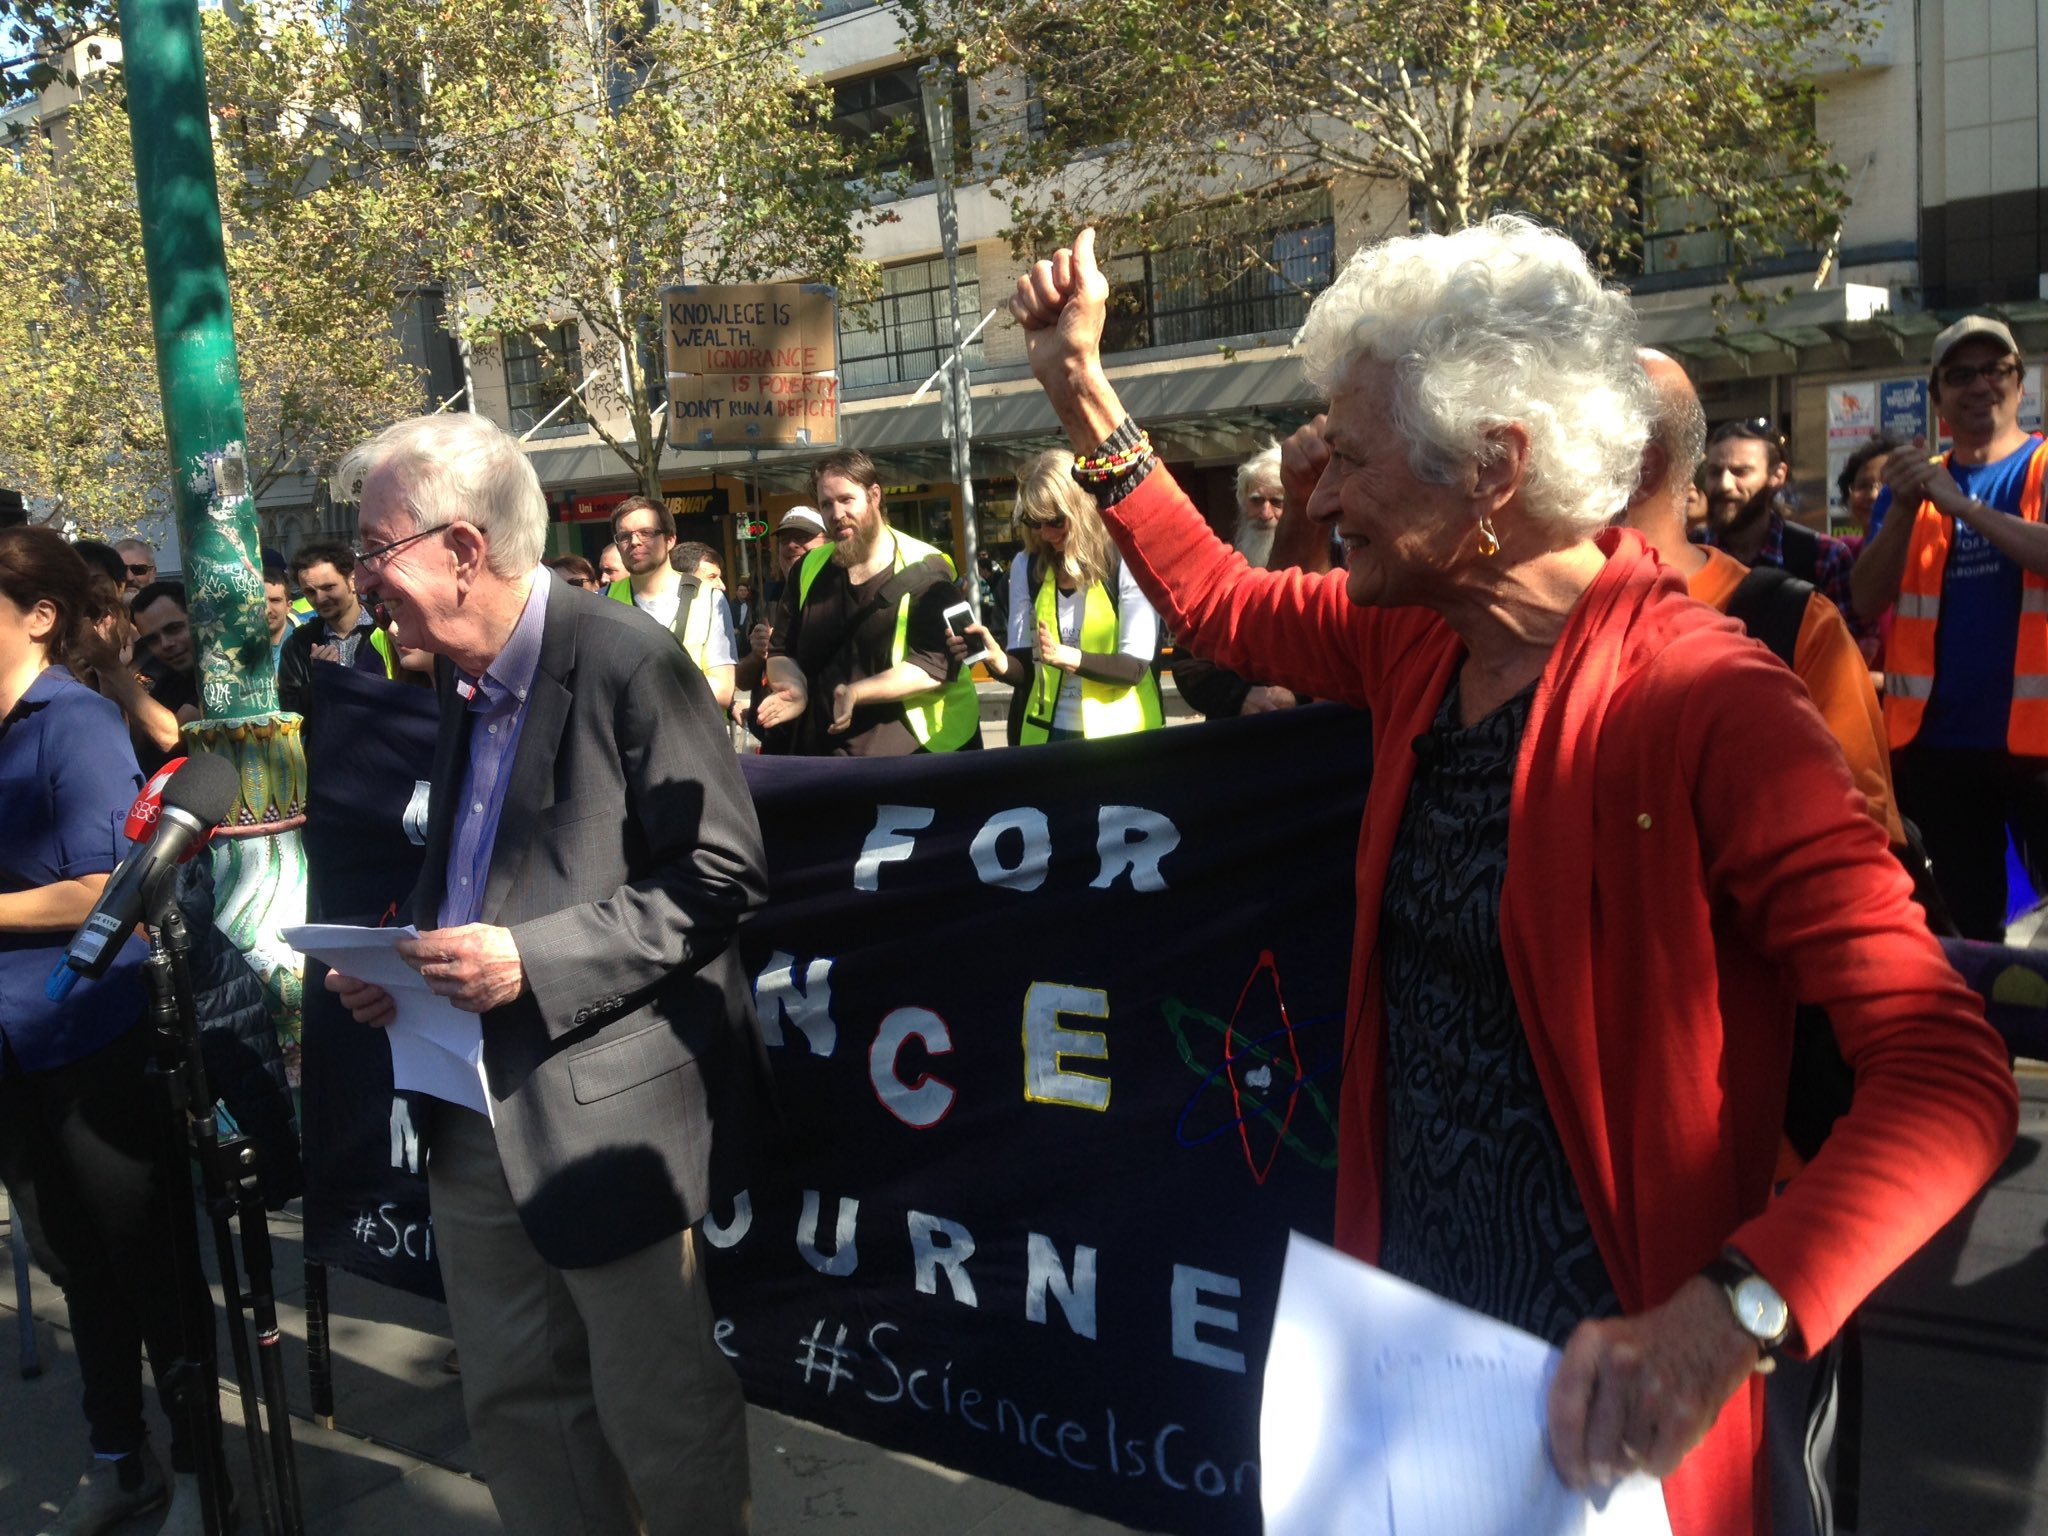 Fiona Stanley introducing Nobel laureate Peter Doherty at #marchforscience We need analysis open publication review. #freedom #prosperity https://t.co/0B9k3CoIEu